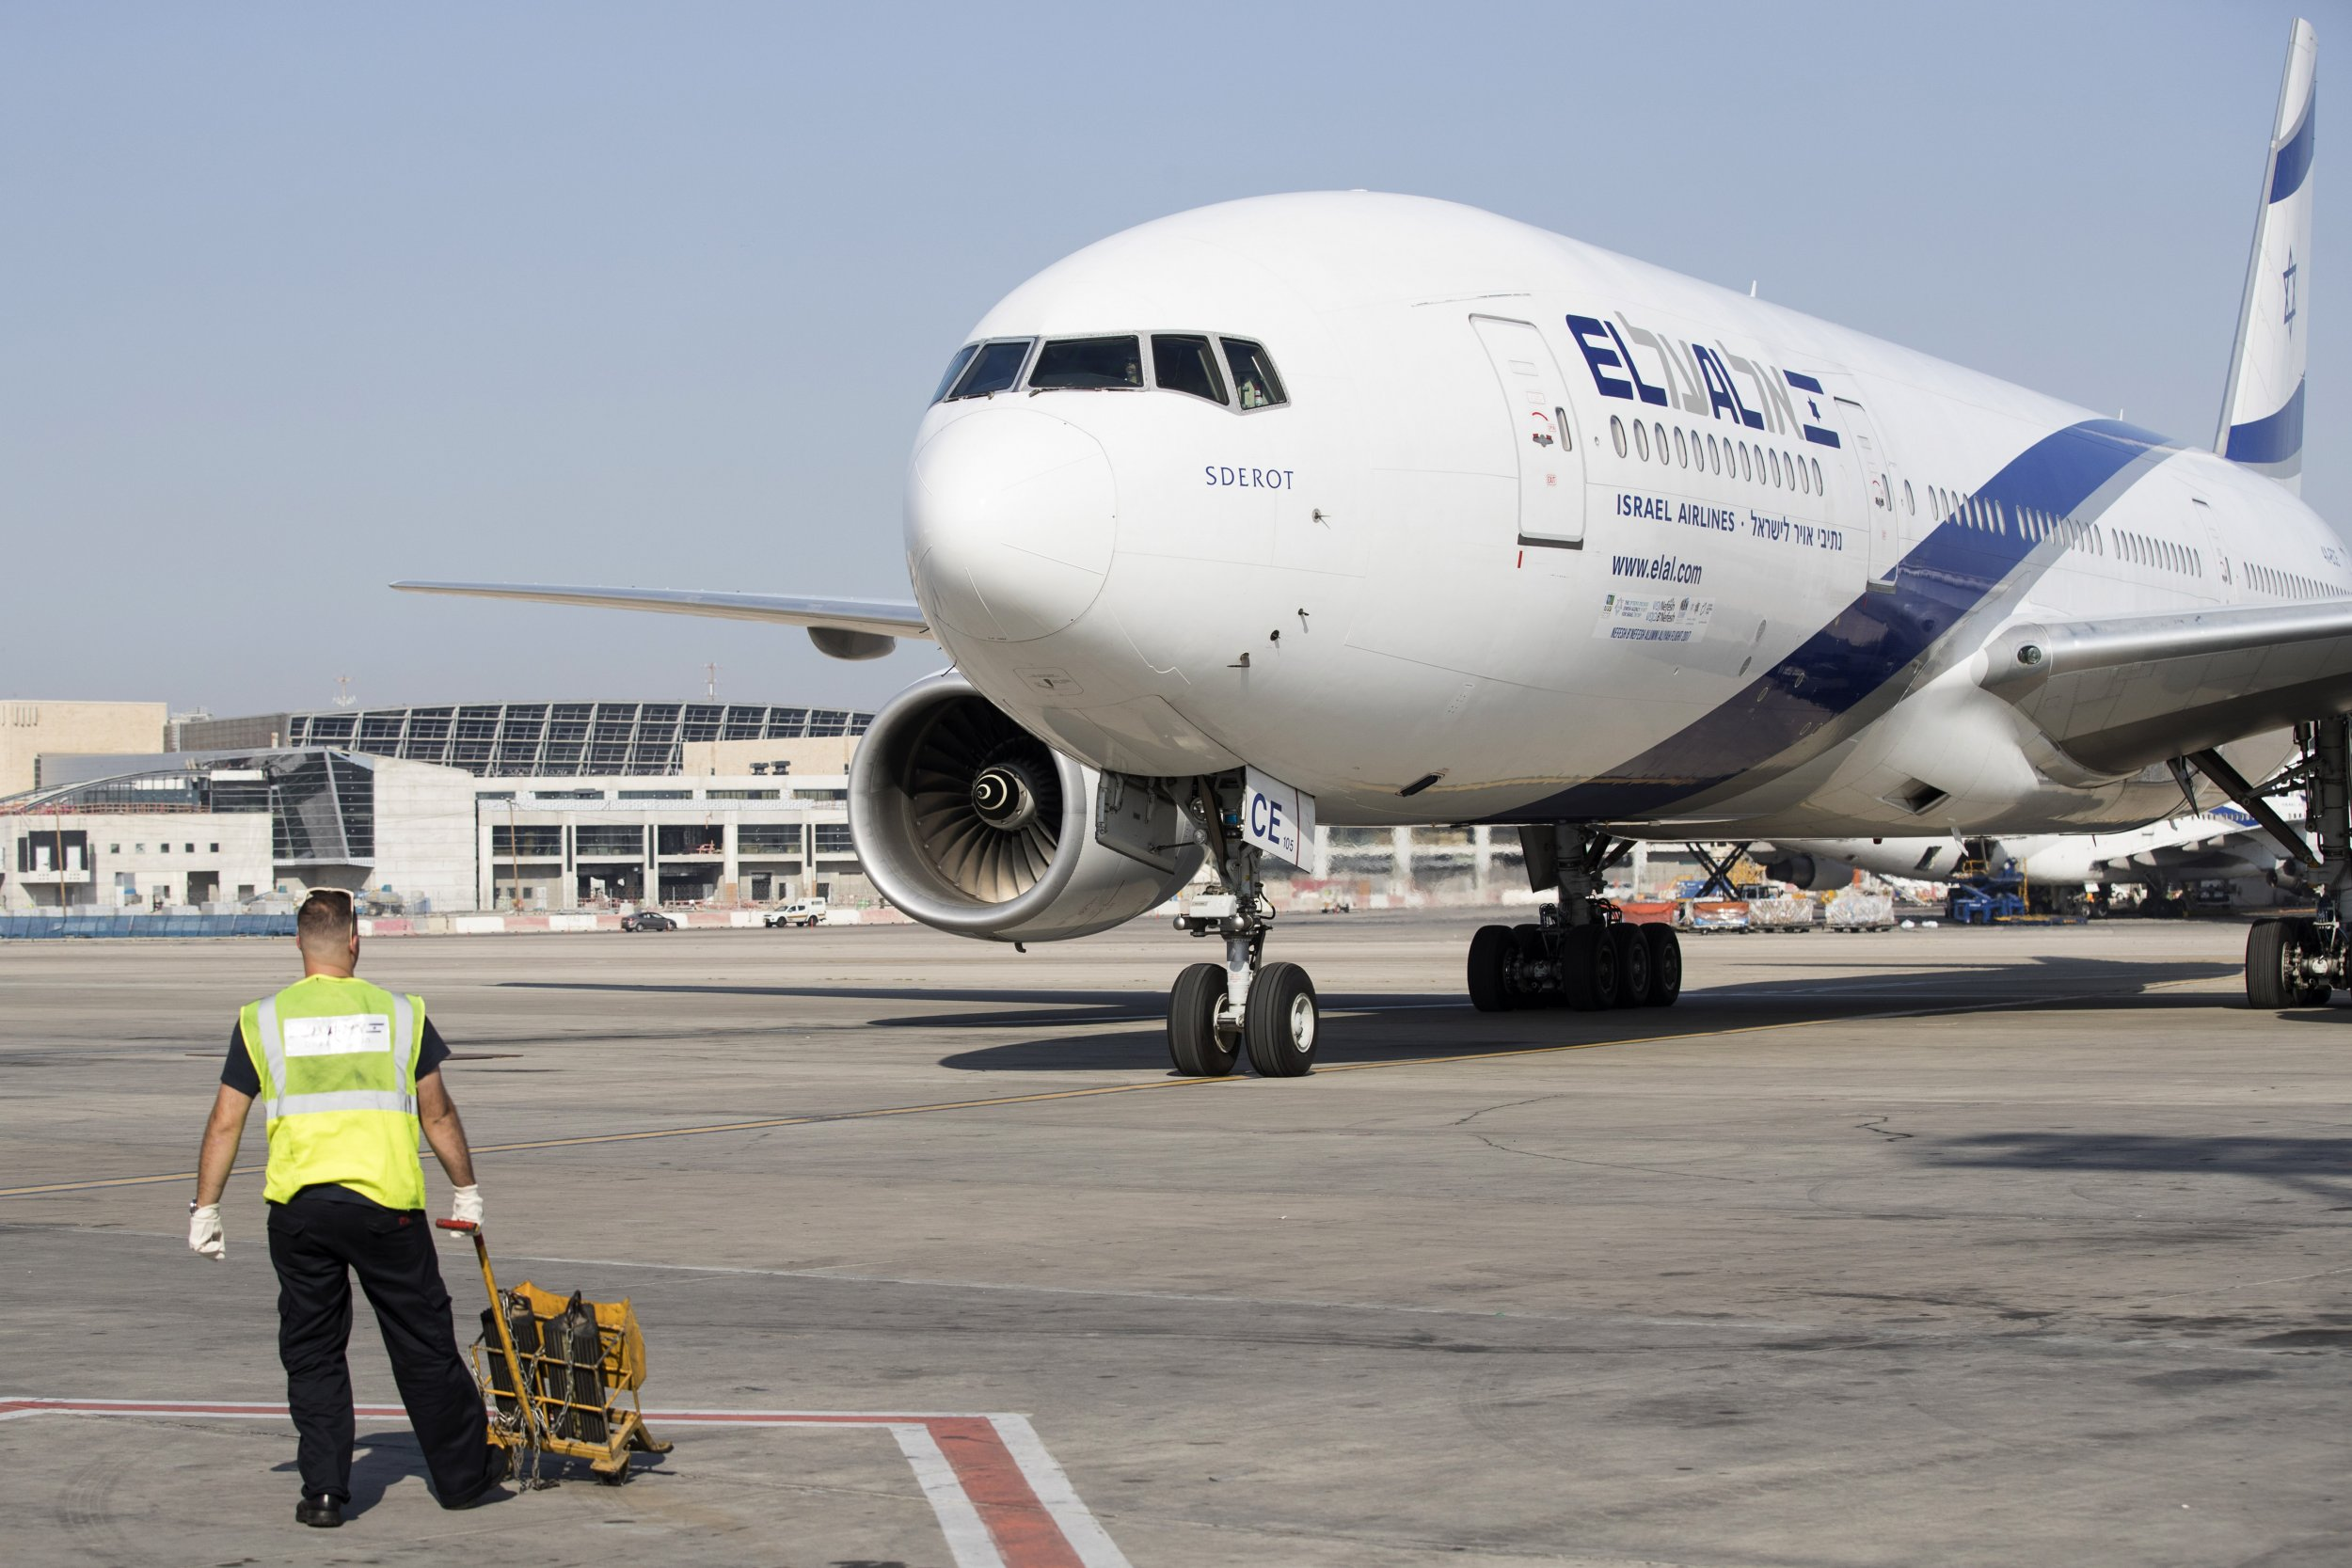 01_22_Israel_Airline